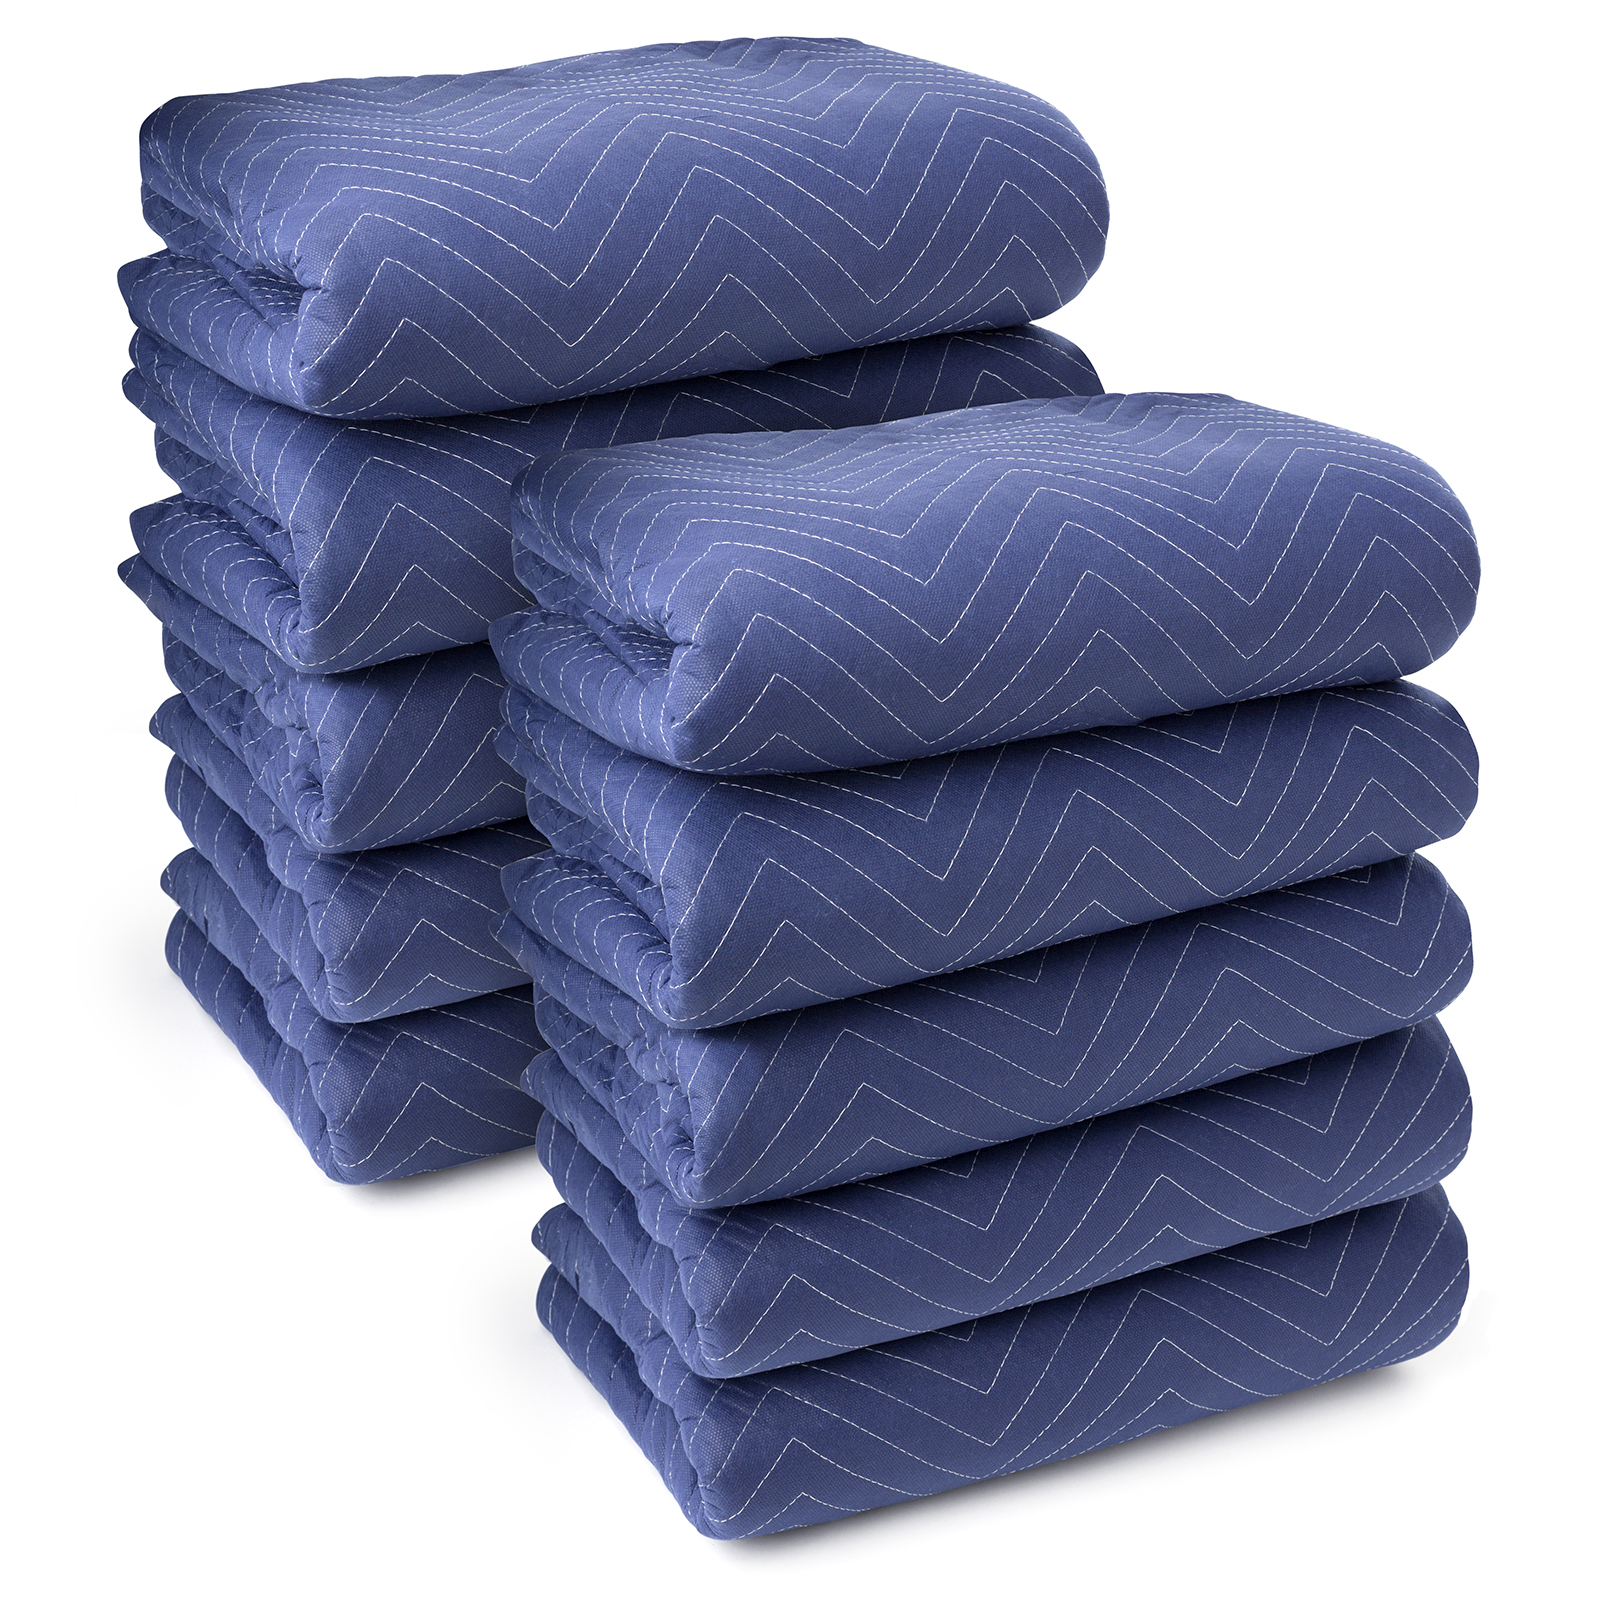 """Sure-Max 10 Moving & Packing Blankets - Deluxe Pro - 80"""" x 72"""" (40 lb/dz weight) - Professional Quilted Shipping Furniture Pads Royal Blue"""